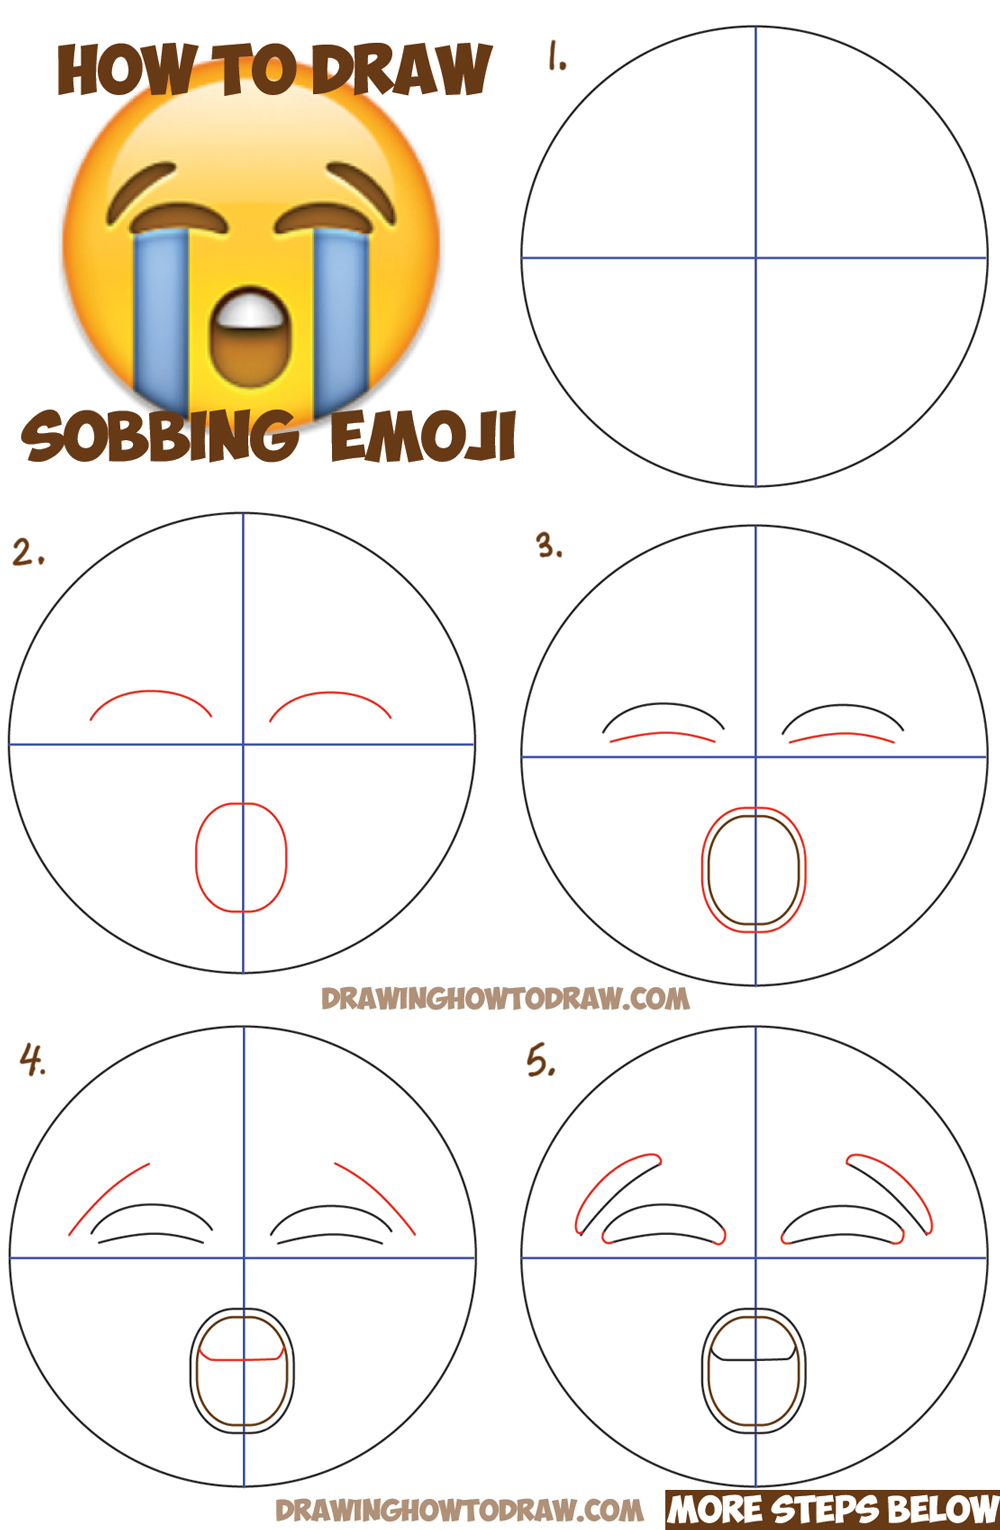 How to Draw Sobbing Crying Emoji Face with Simple Step by Step Drawing Tutorial